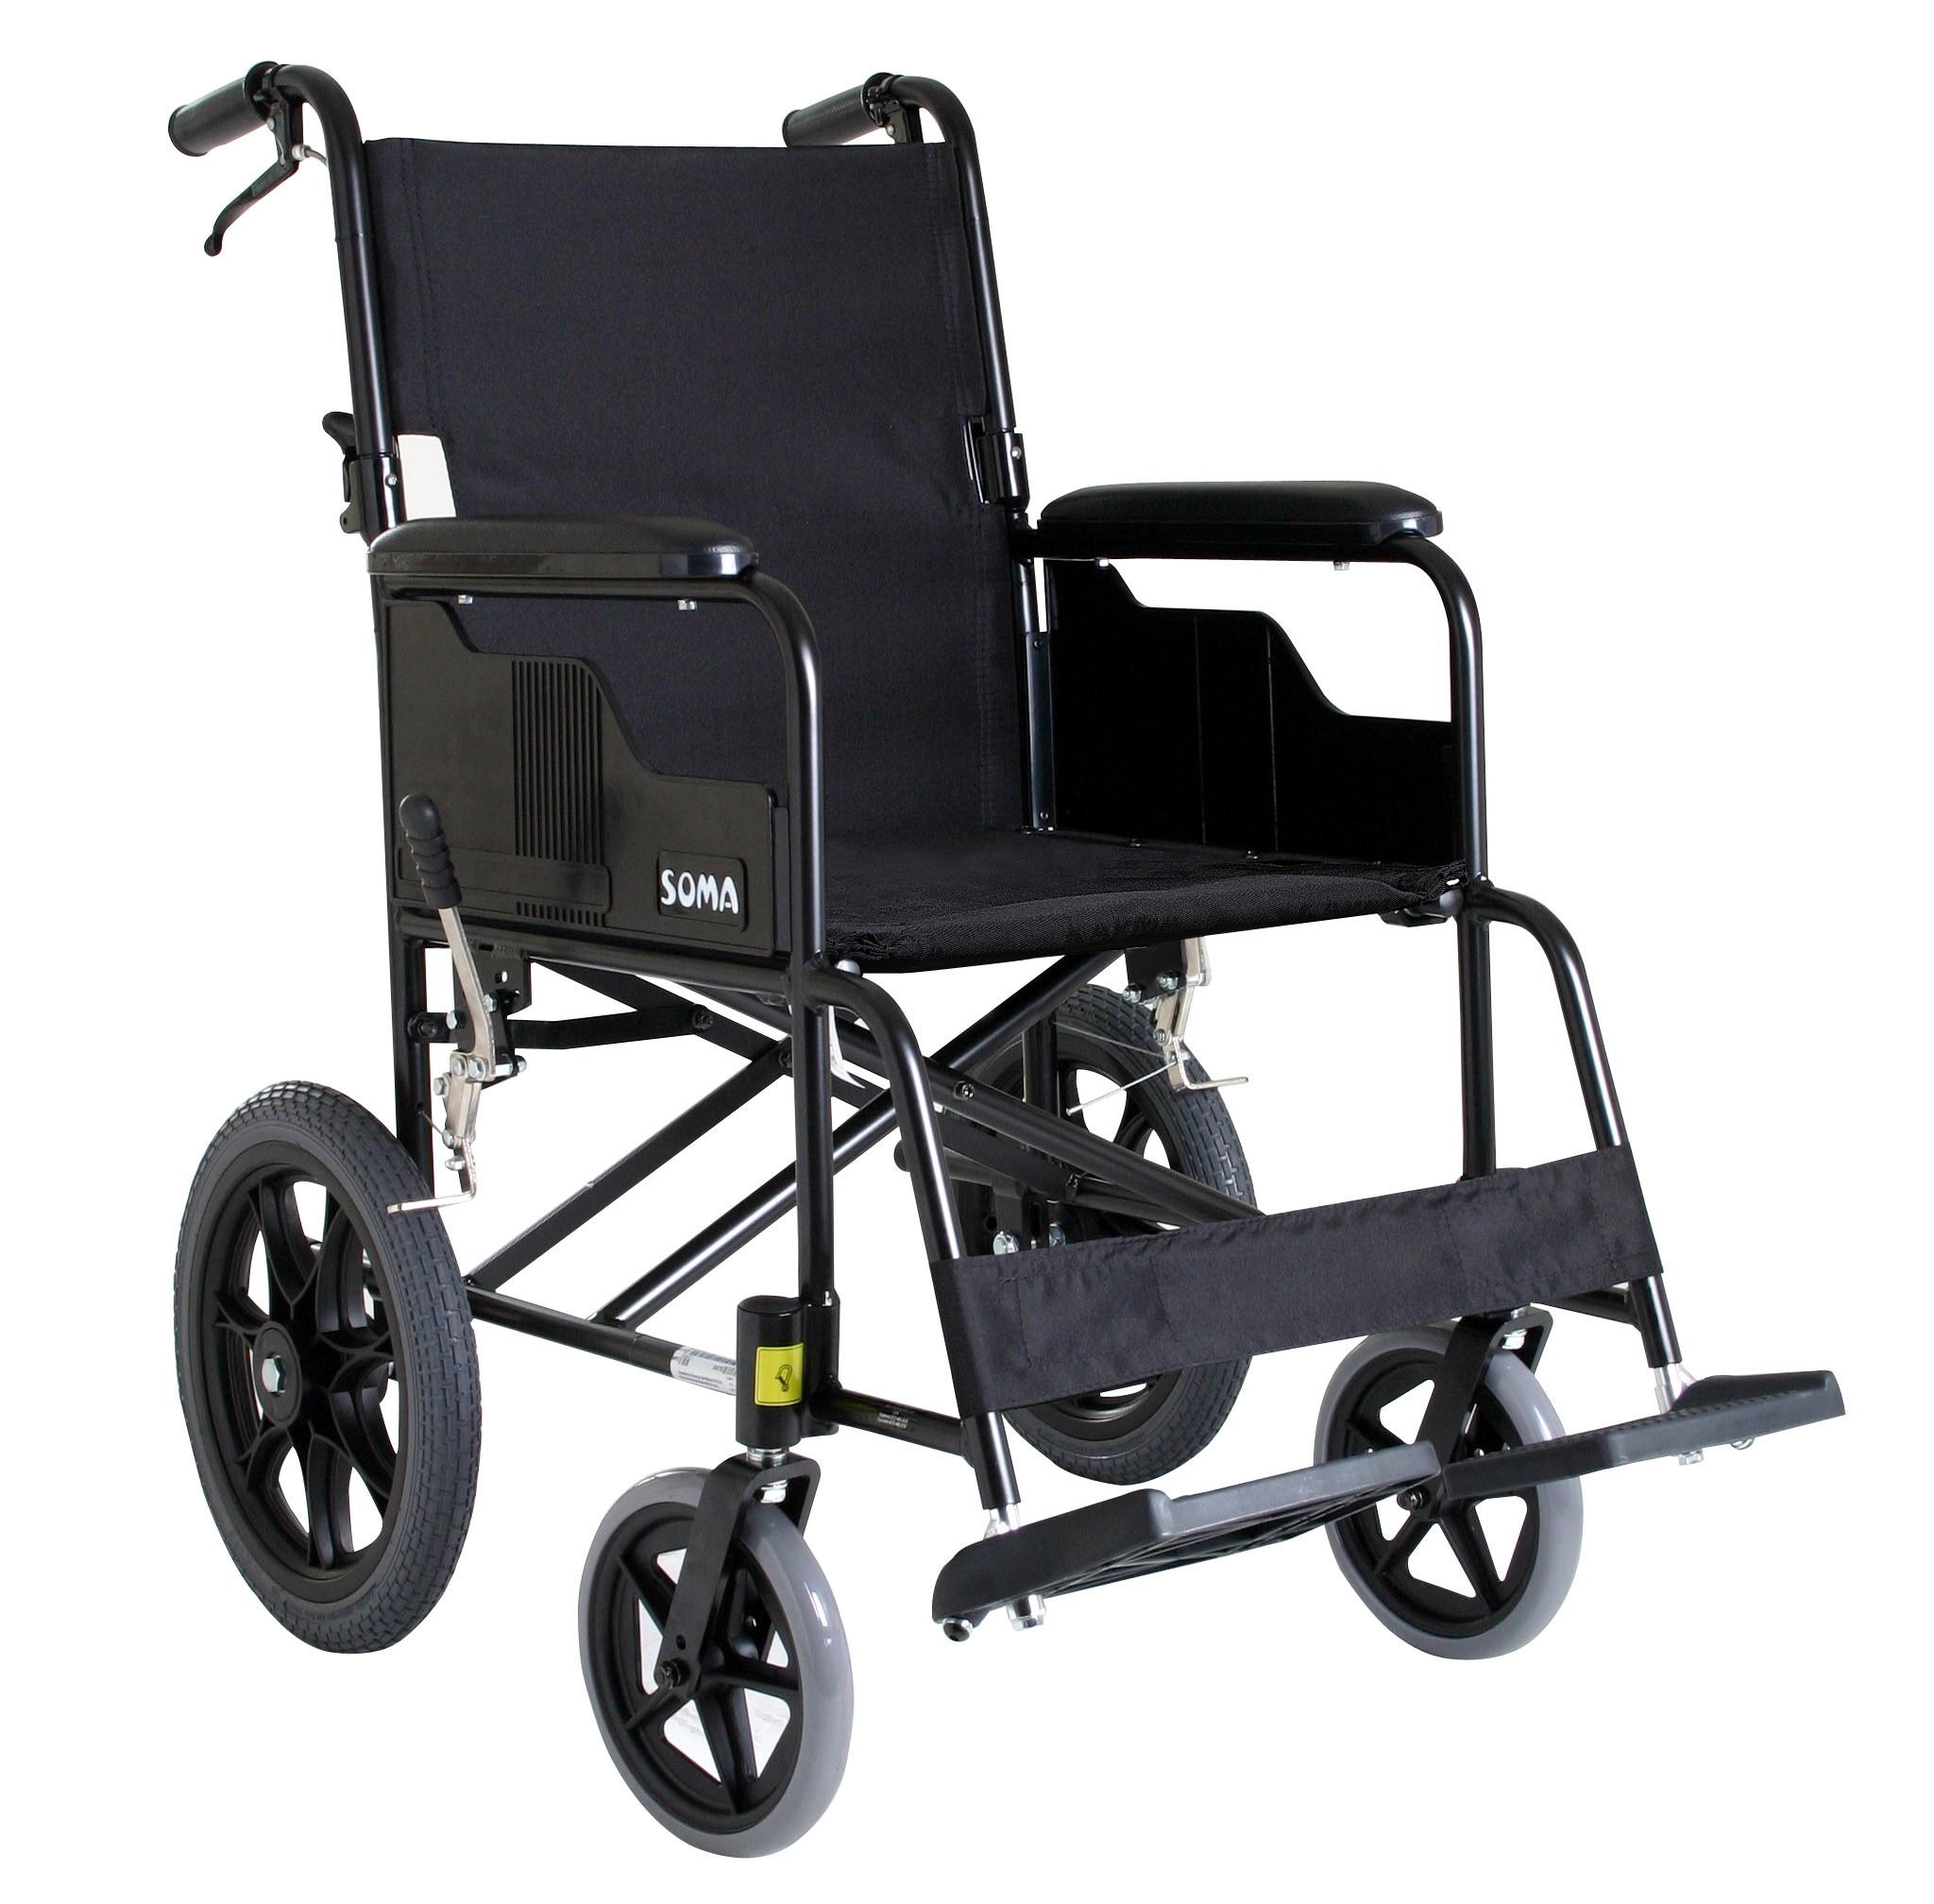 Karma Sparrow Transit Wheelchair Cheap With Price Match Promise UK